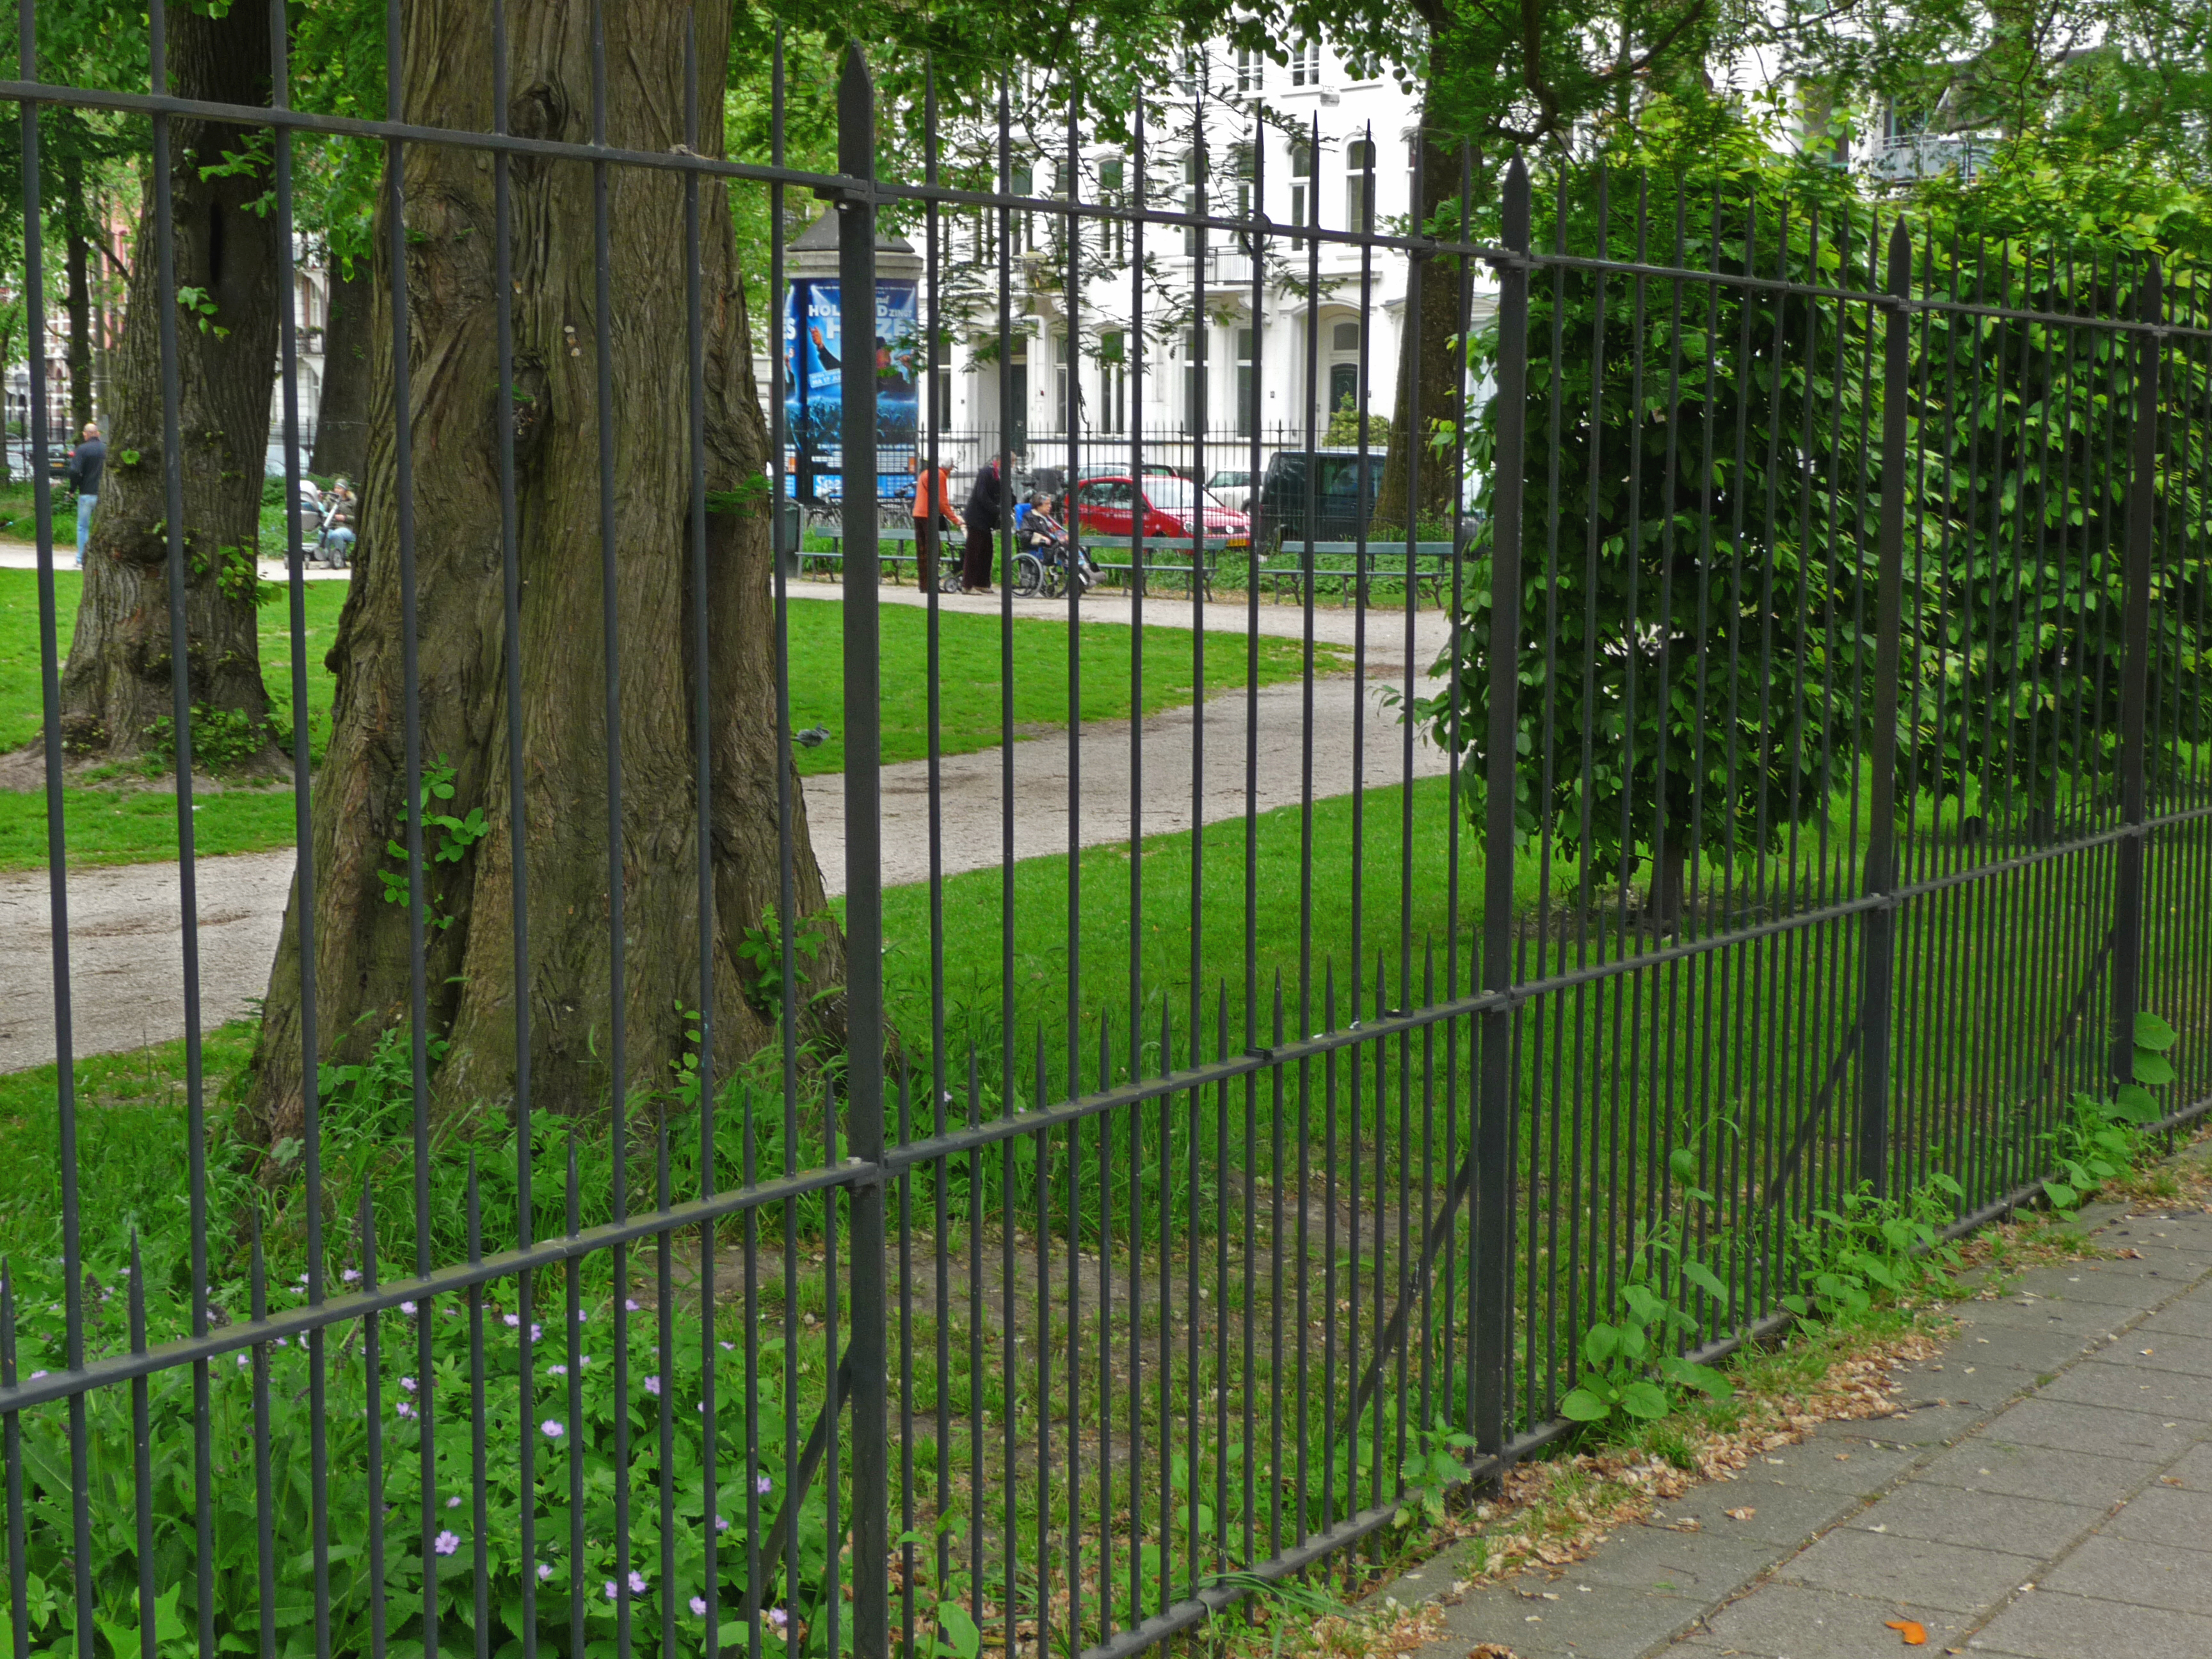 File Photo Of The Fence And Tree Trunks In The Wertheim